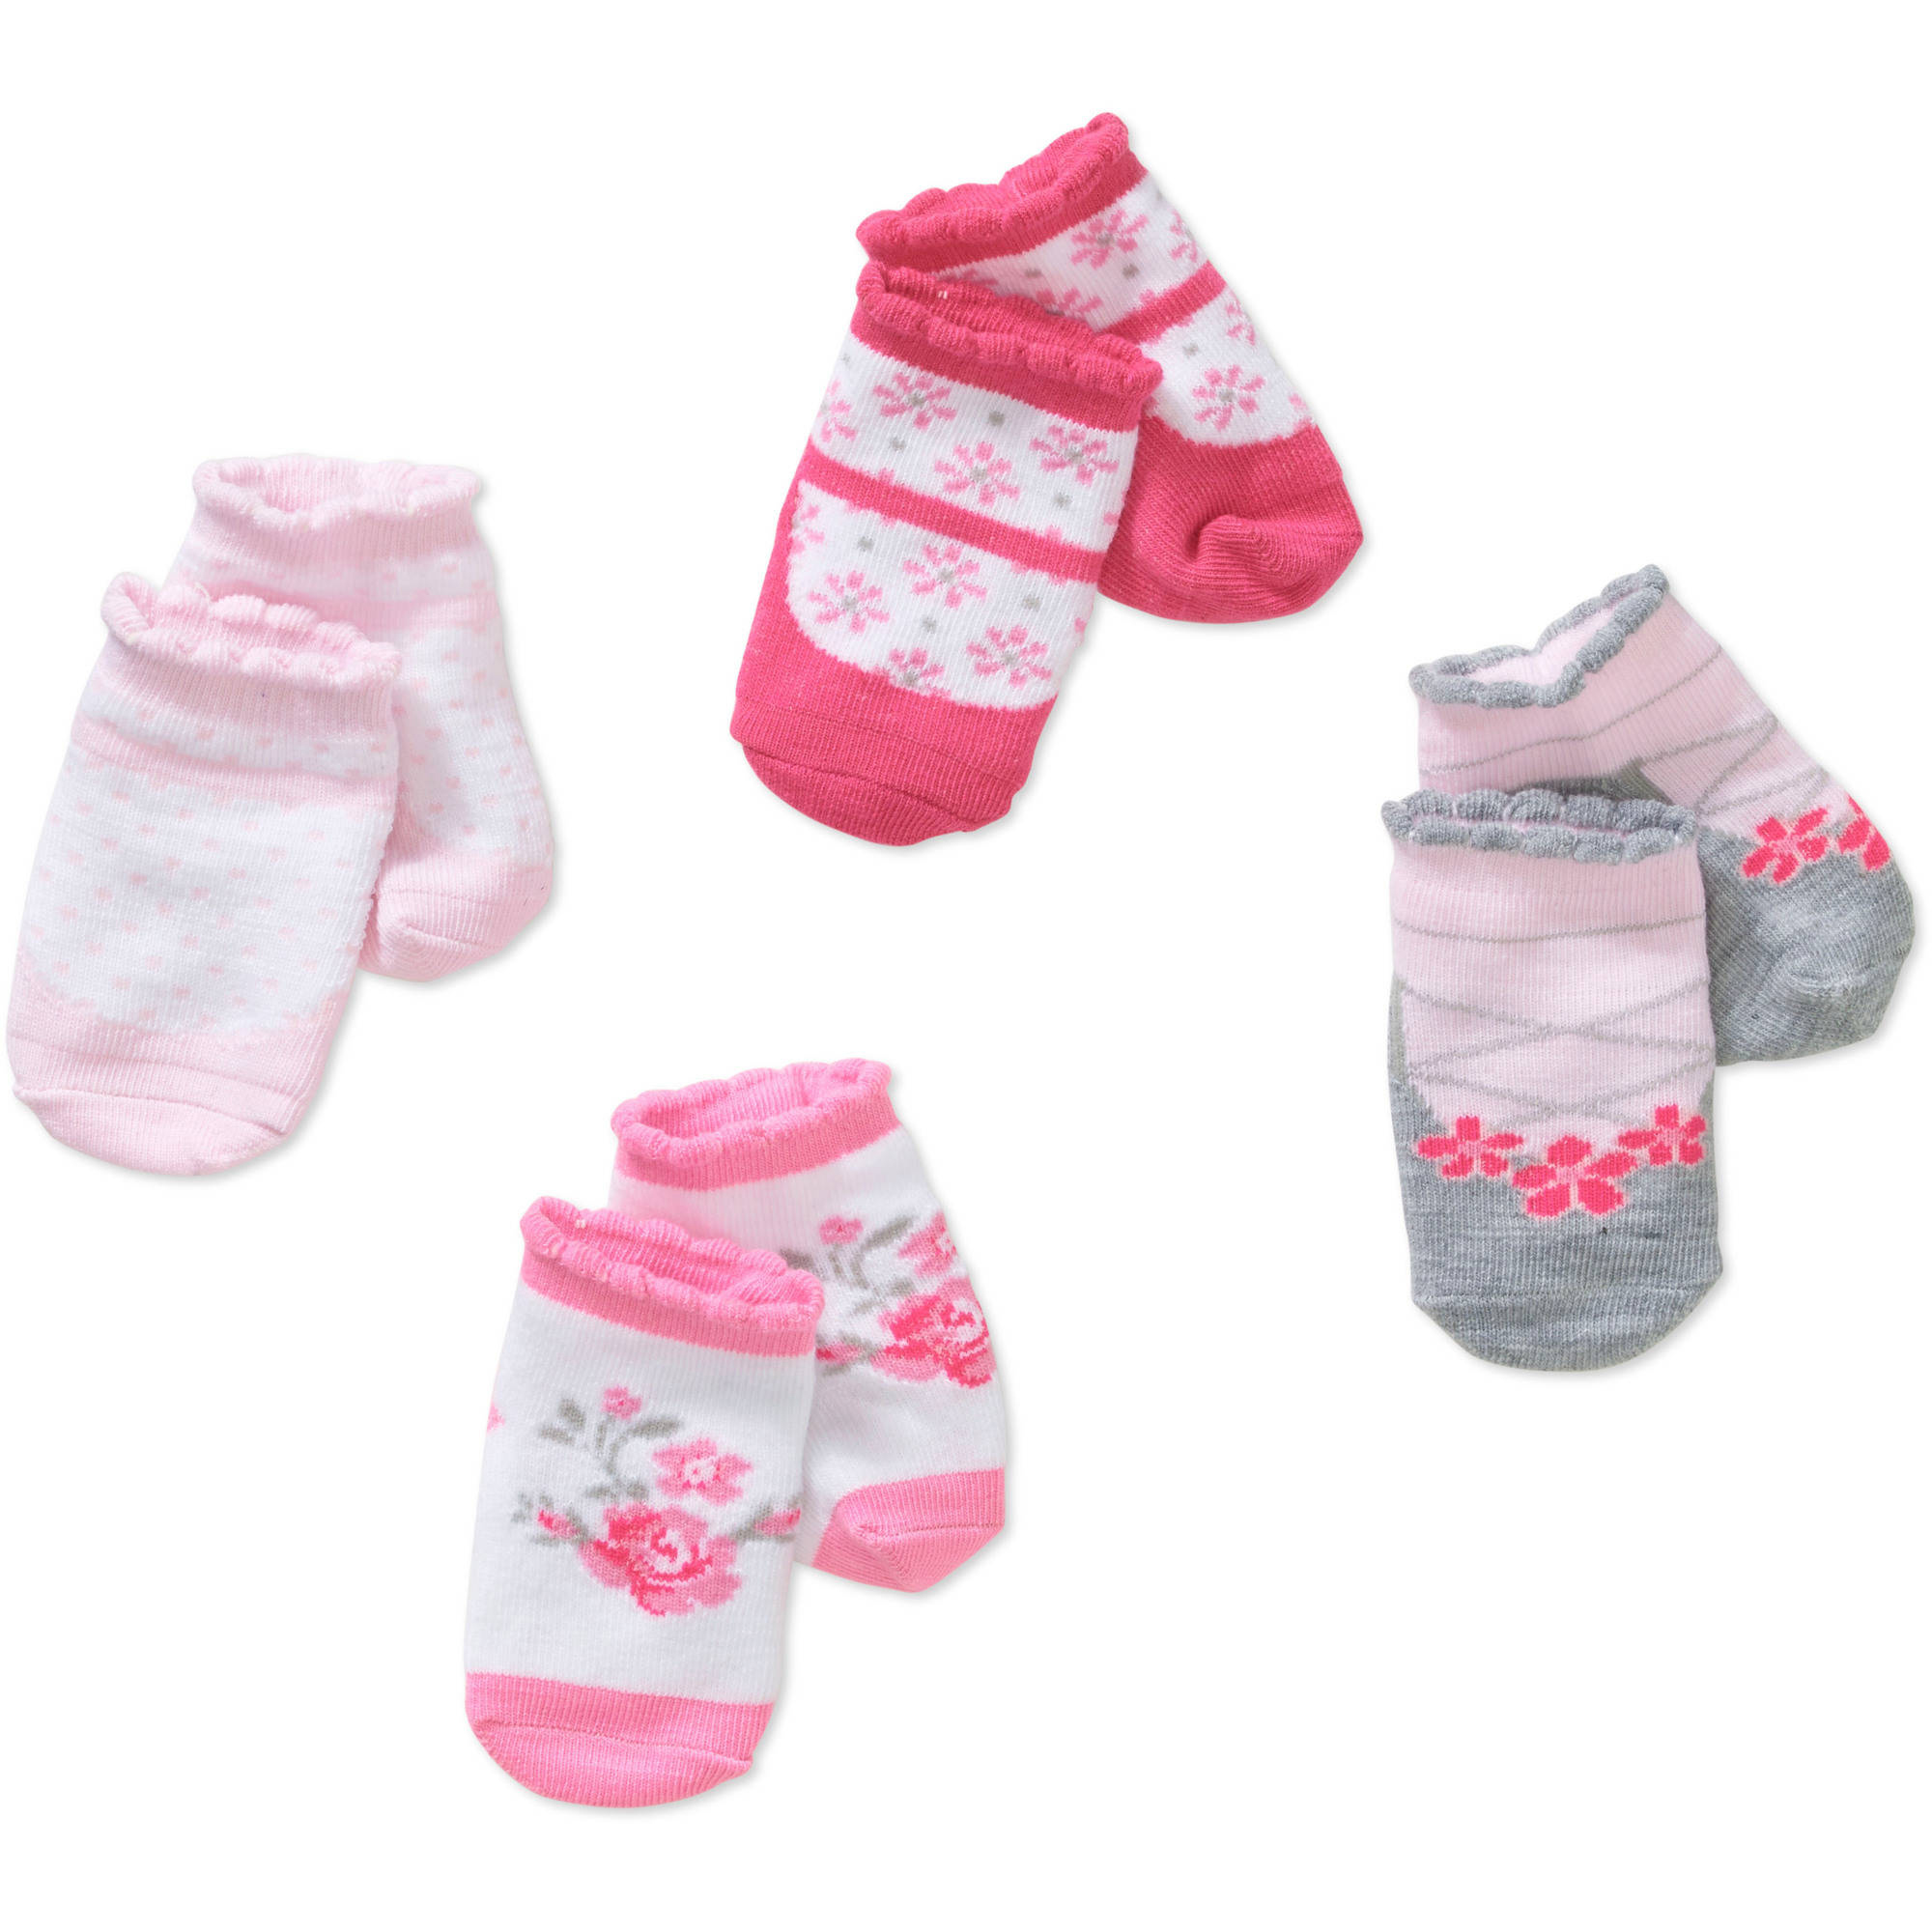 Newborn Baby Girl Socks Set - 4 Pack